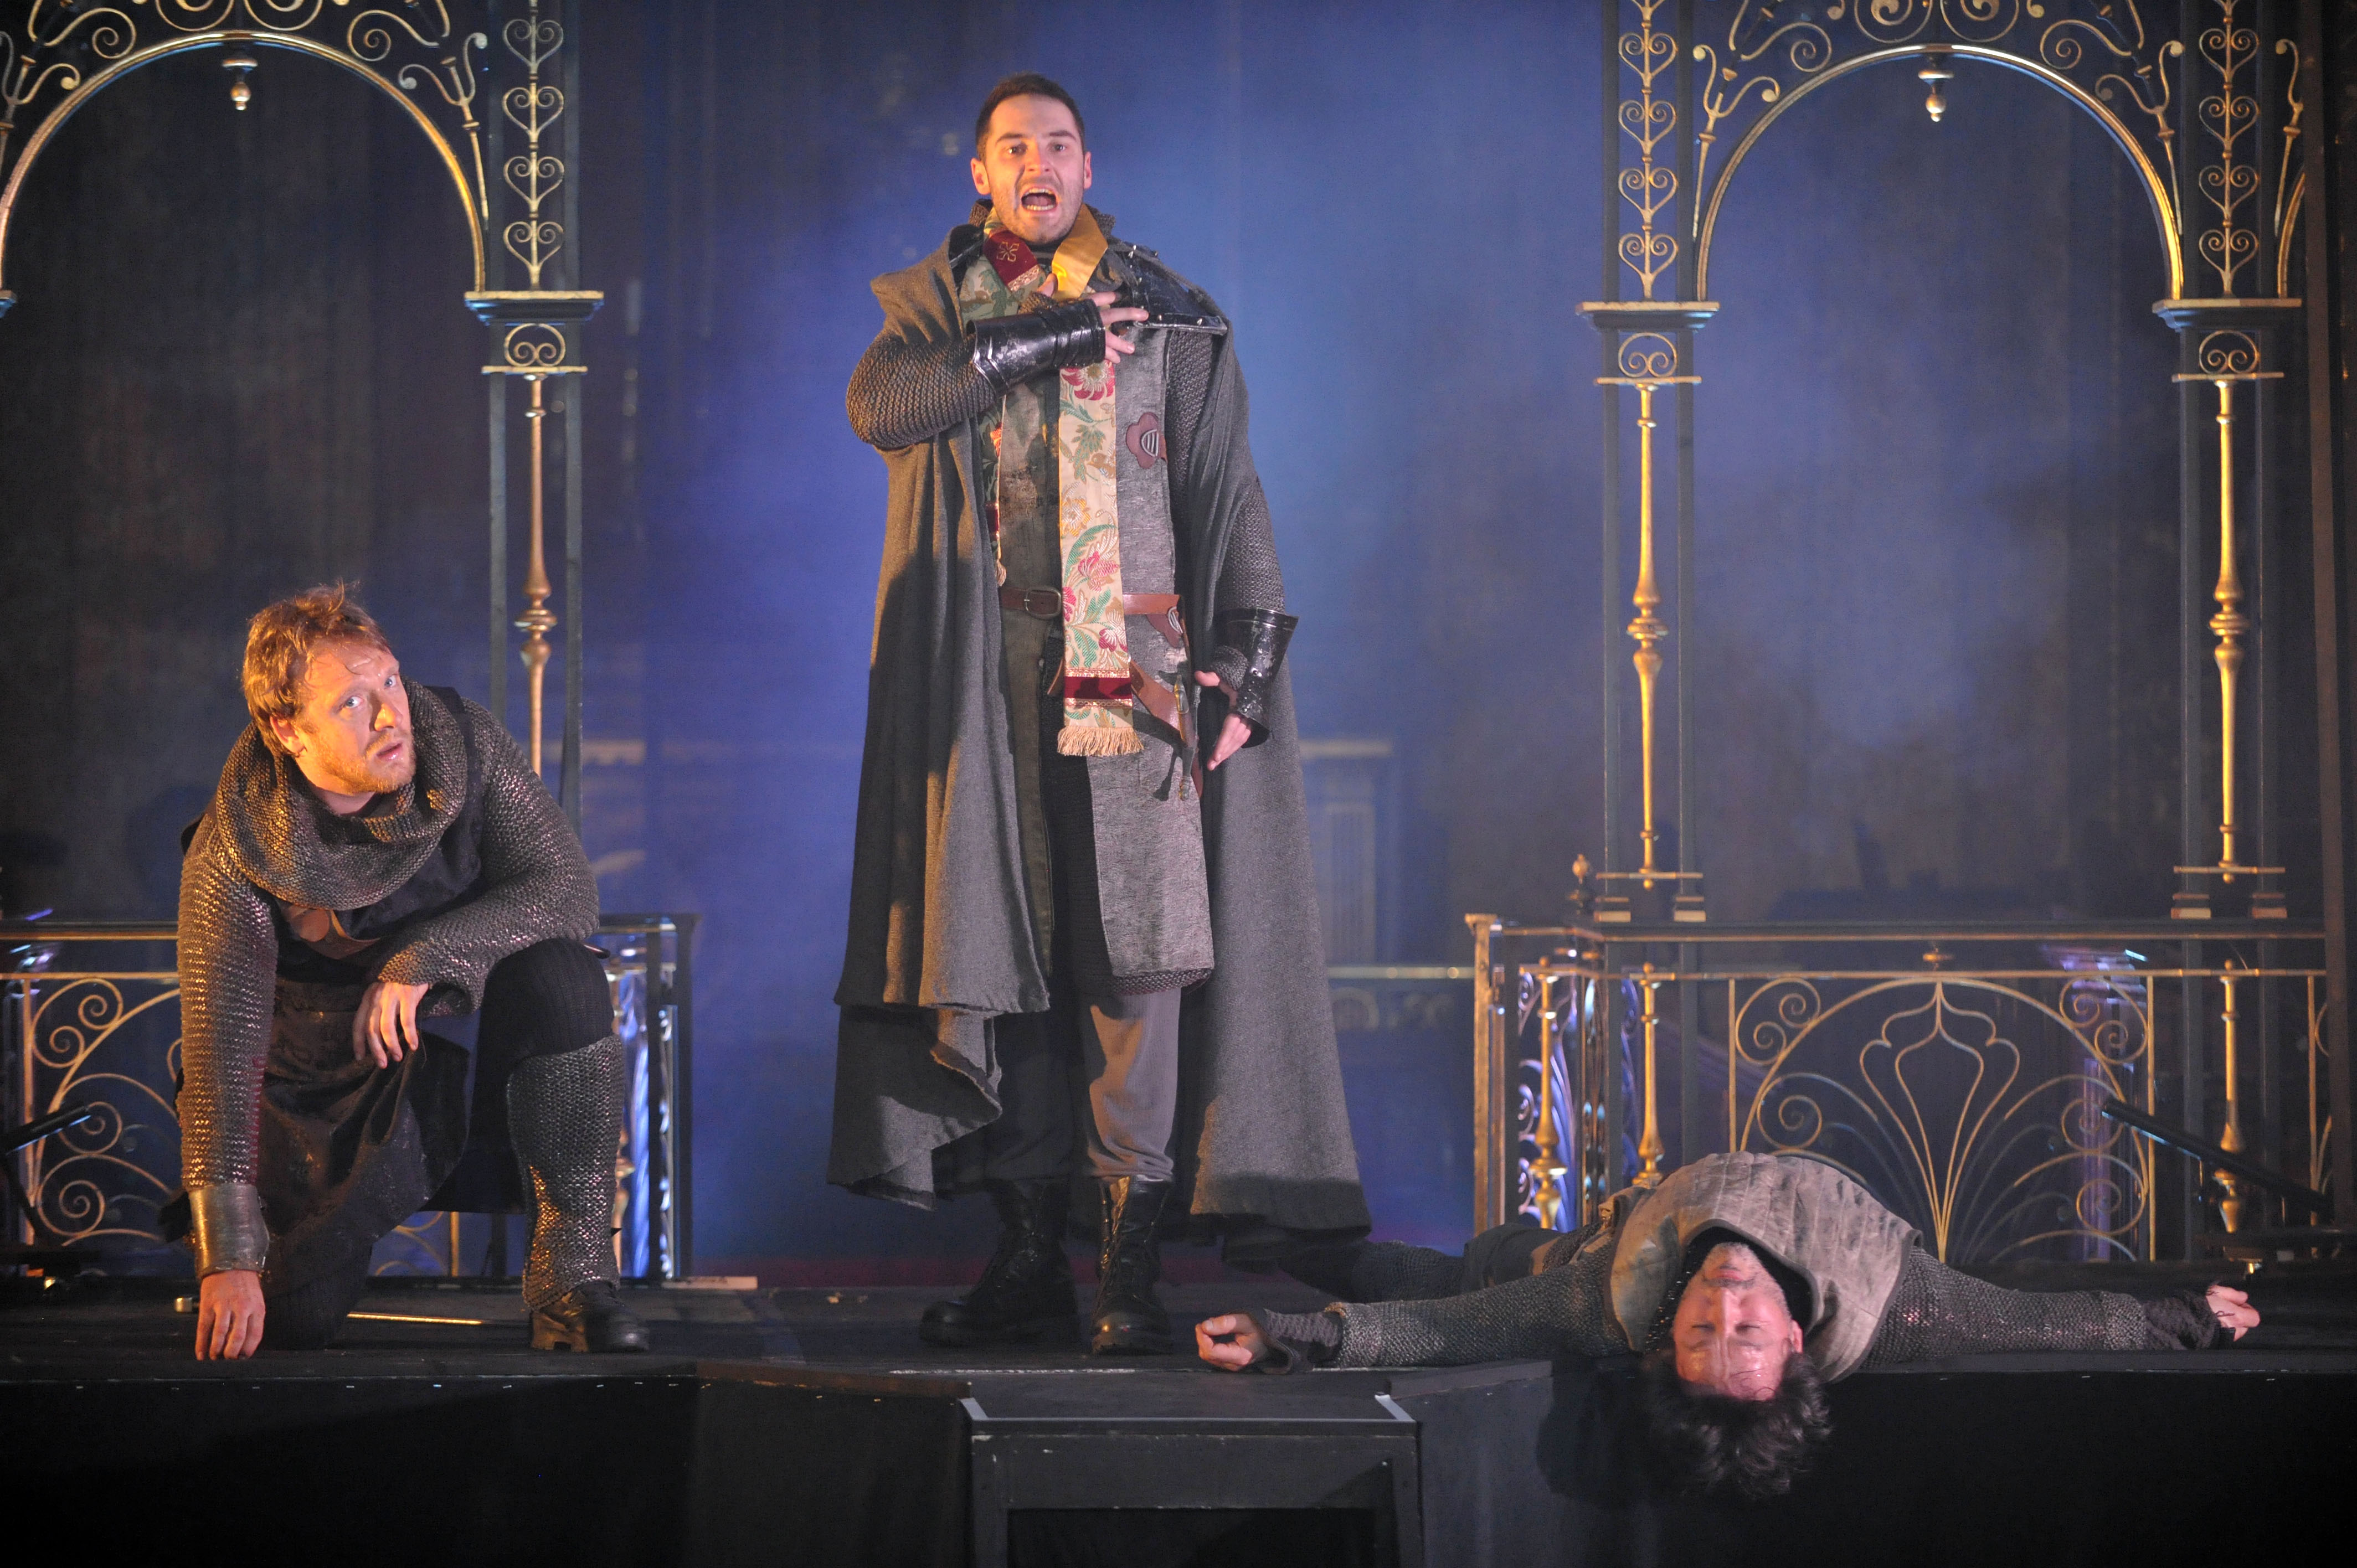 Macbeth by the Guildford Shakespeare Company, Holy Trinity Church, High Street, Guildford